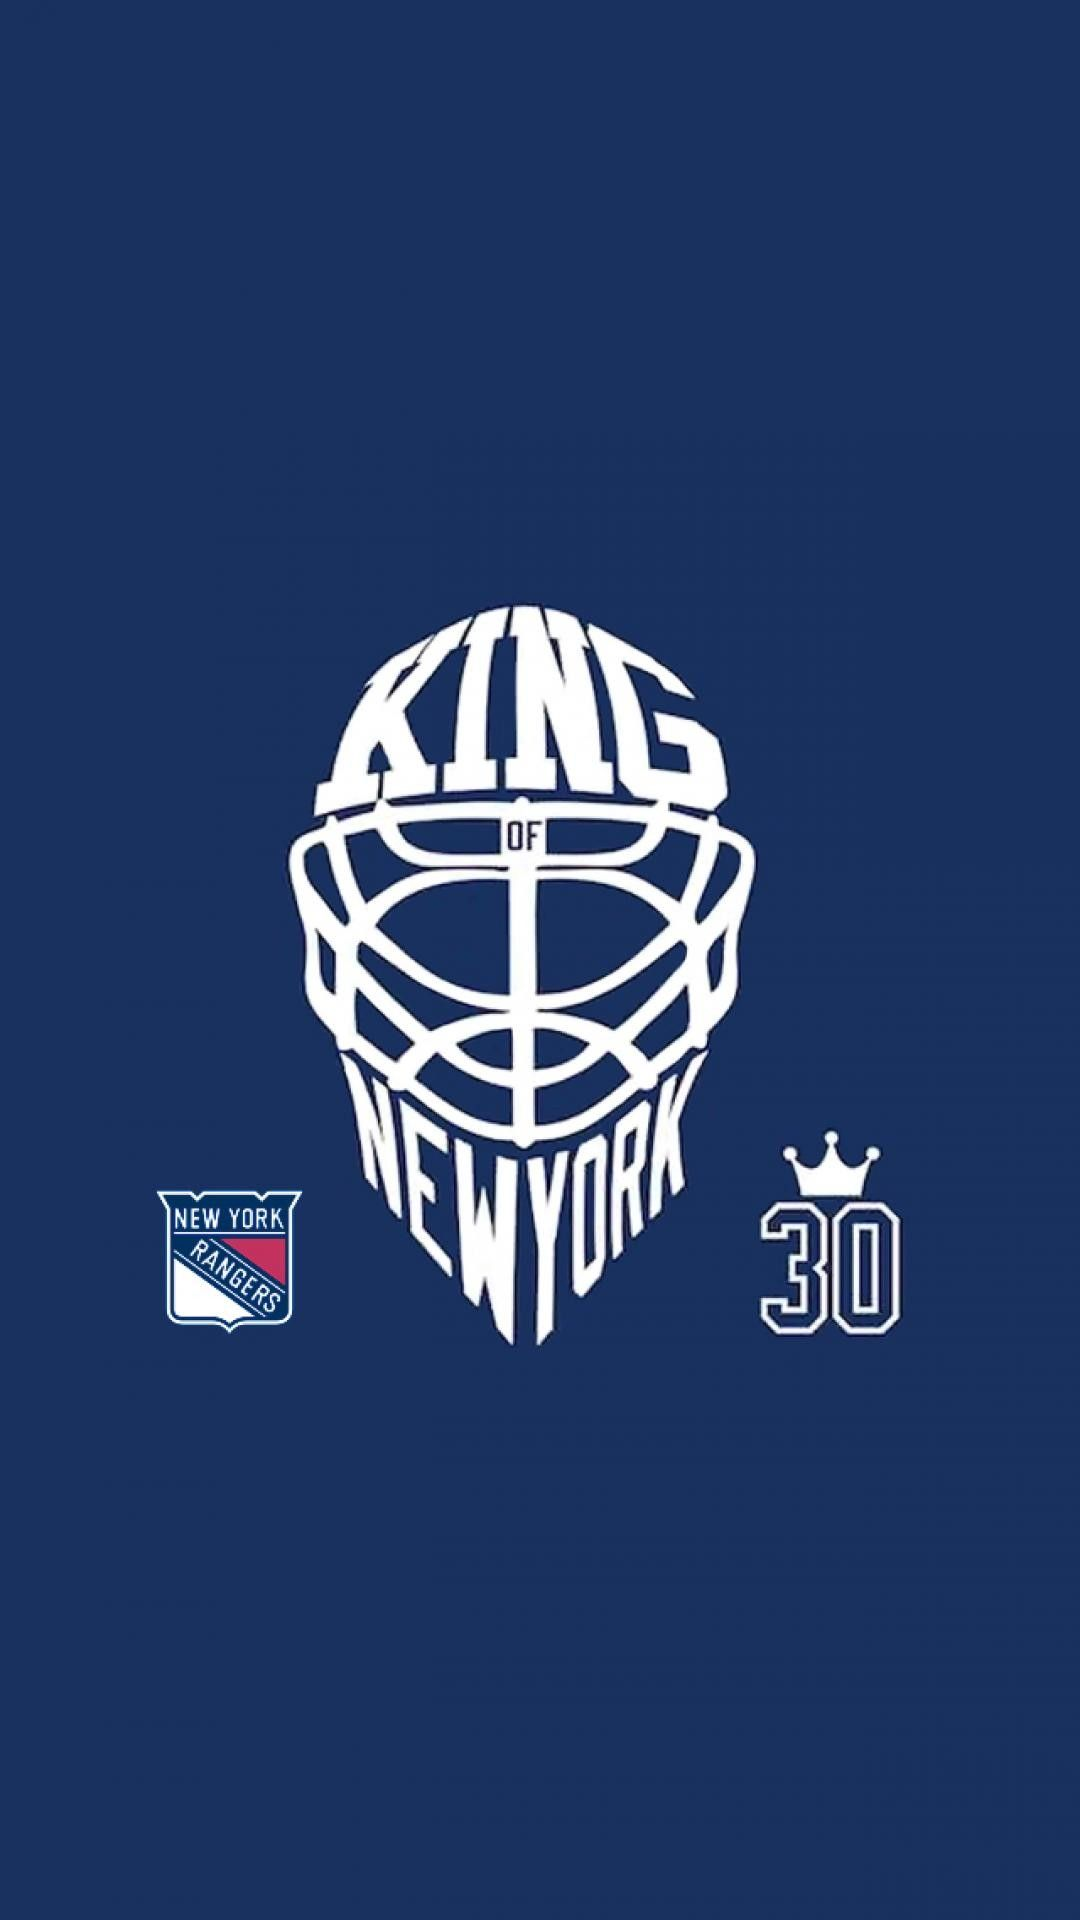 Top Ny Rangers Wallpaper 1080x1920 For Computer Nhl Wallpaper